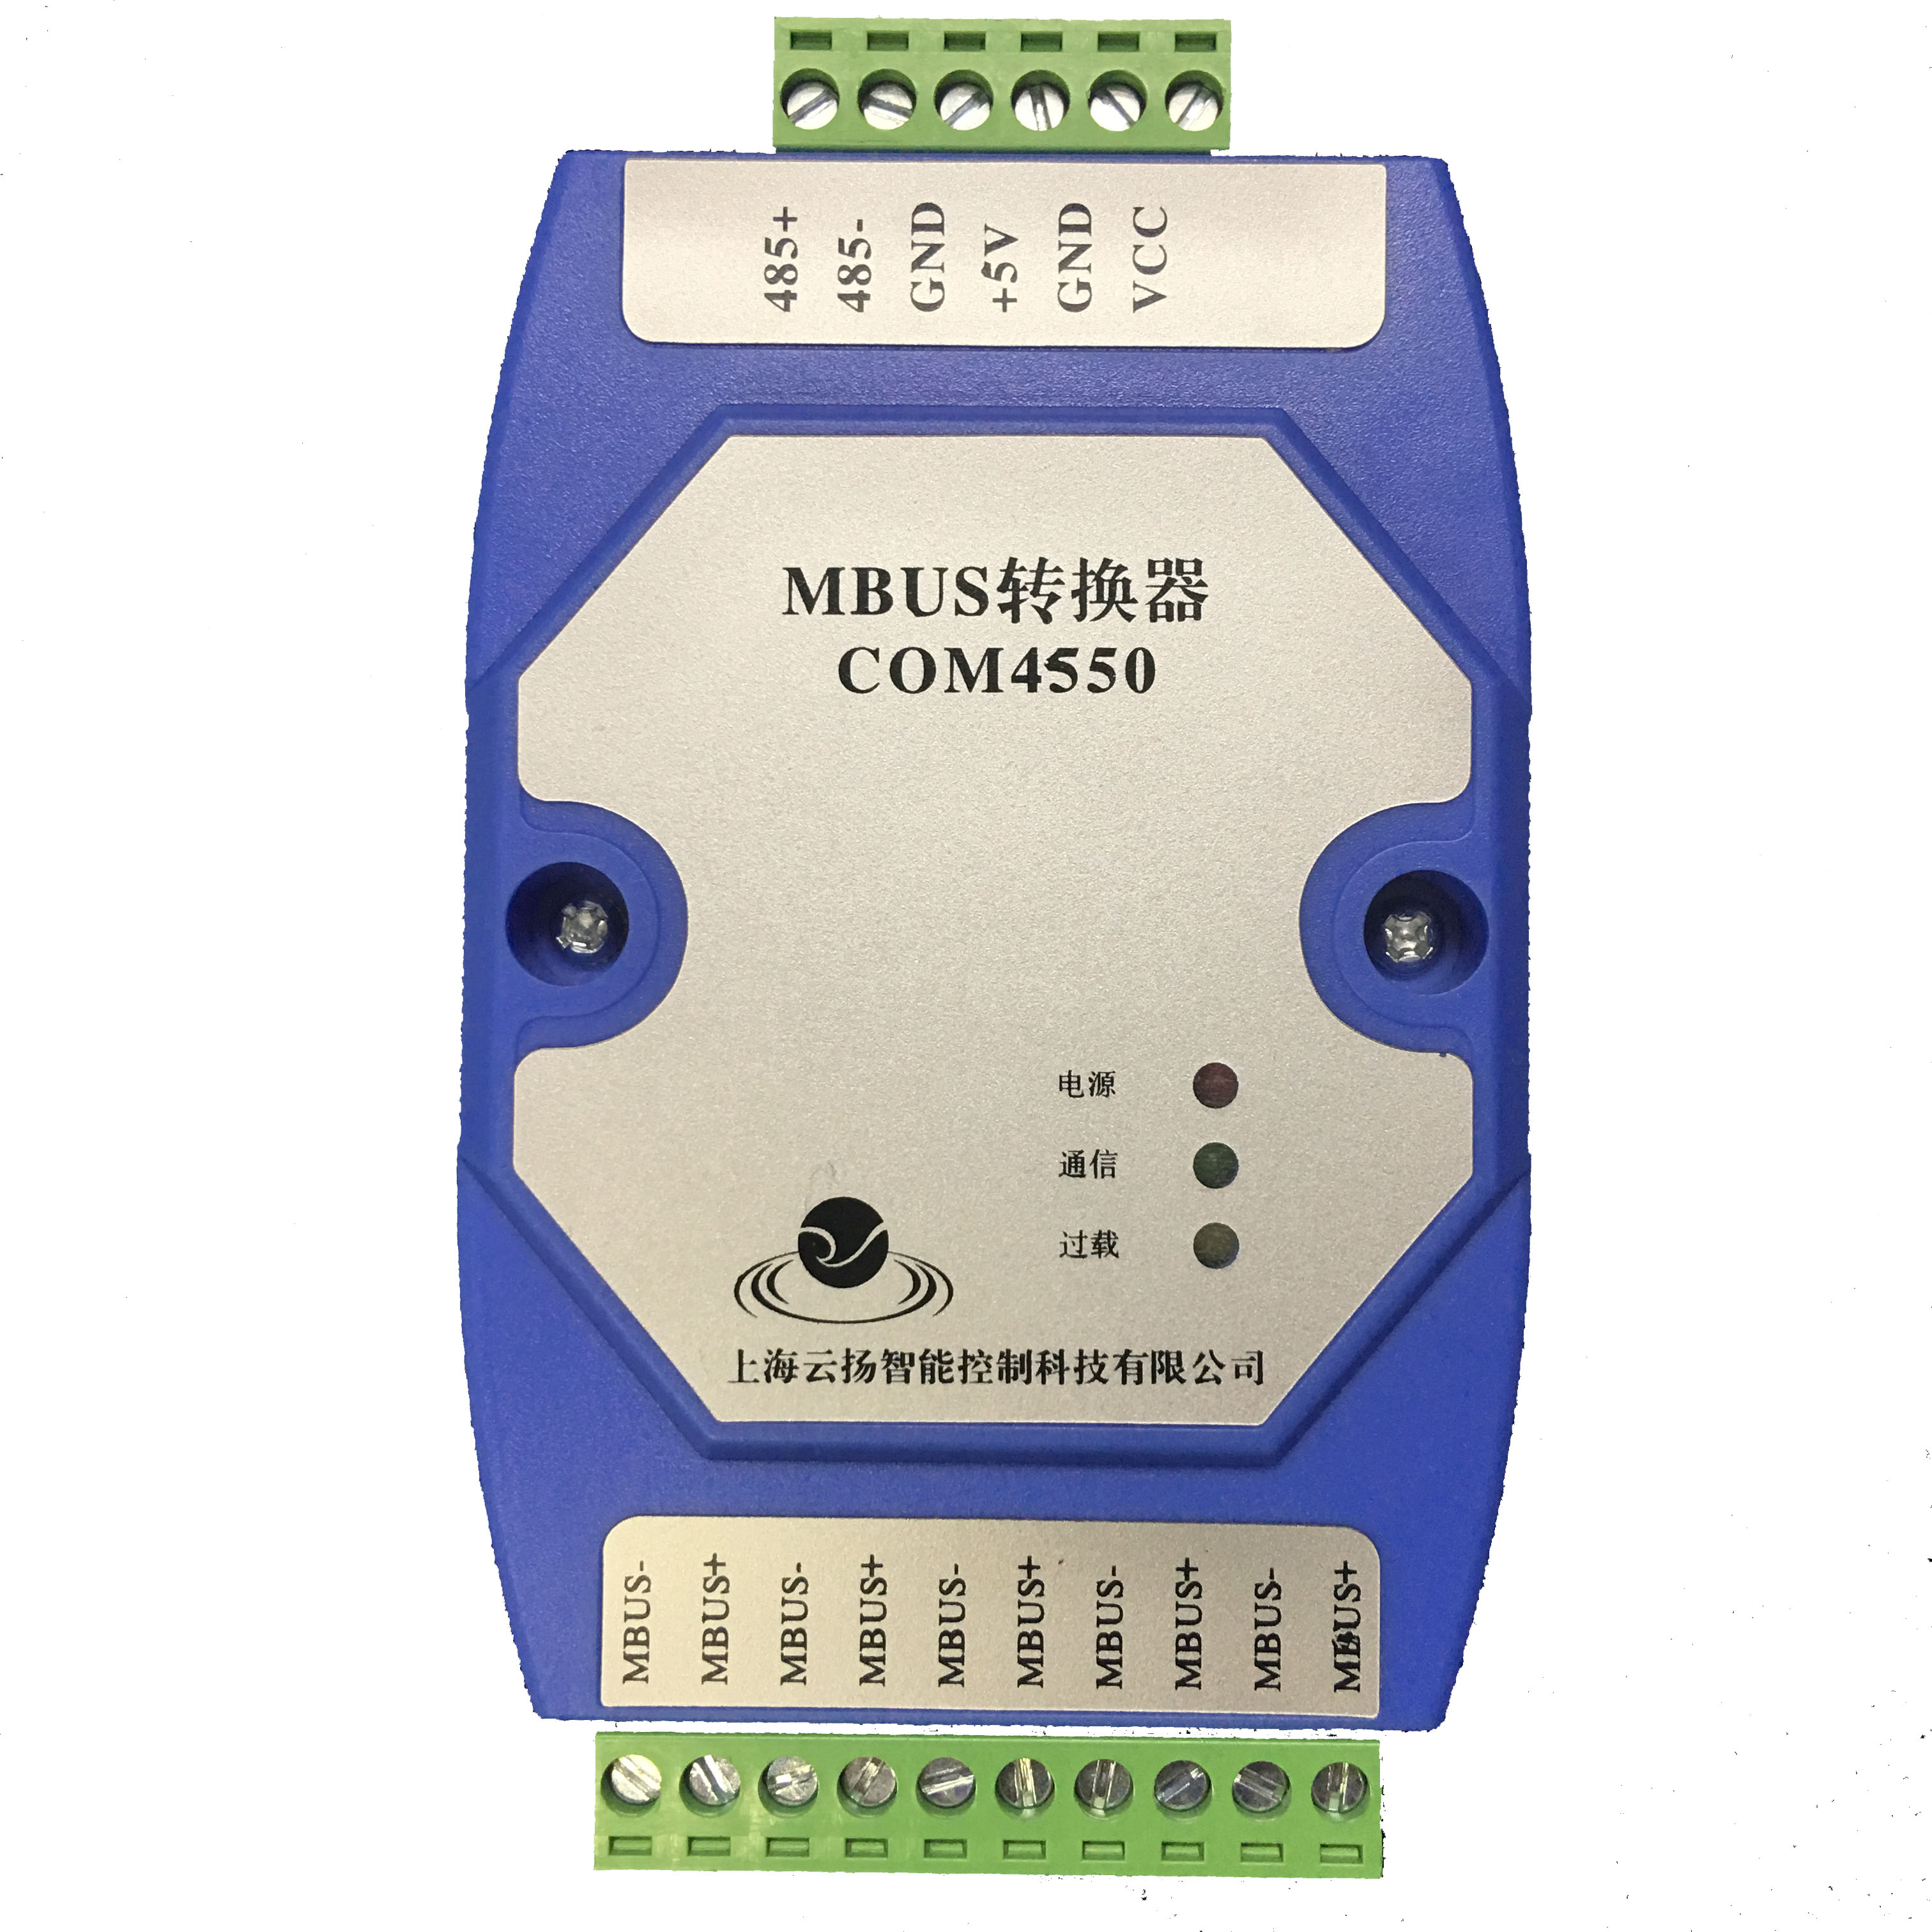 RS485 RS232 Serial Port to MBUS/M-BUS Concentrator Meter Reading Converter Module Super 300 Slave Station rs232 to rs485 converter